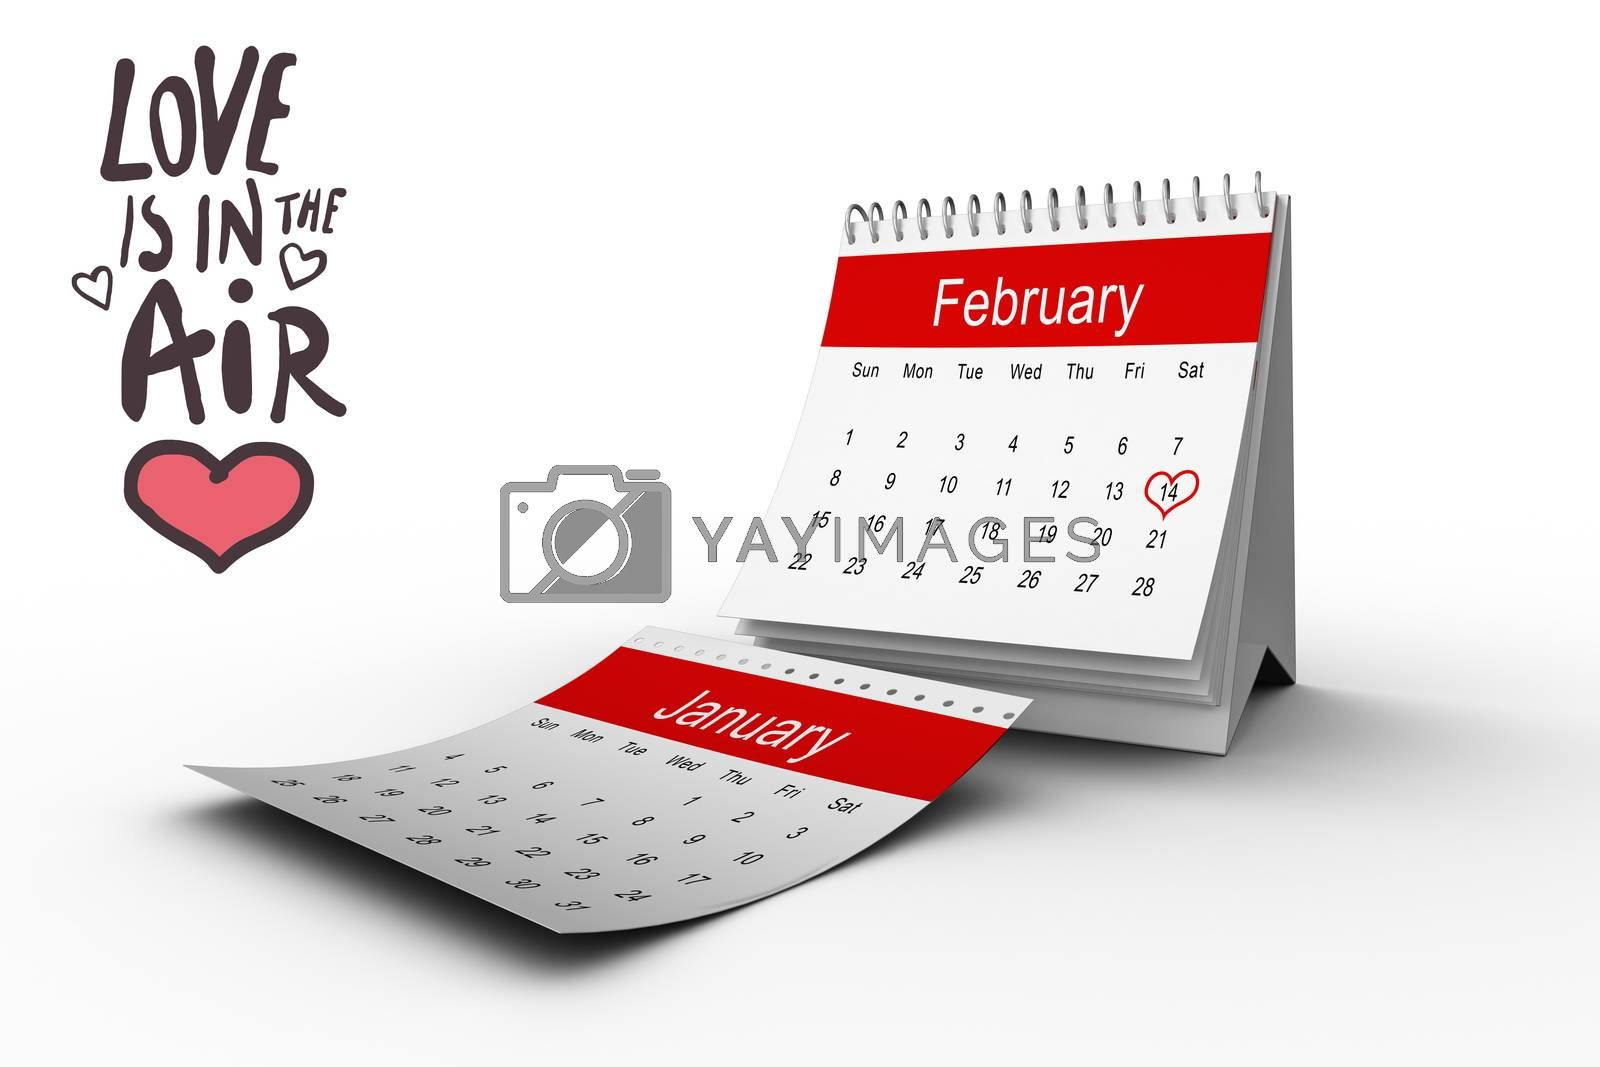 love is in the air against february calendar